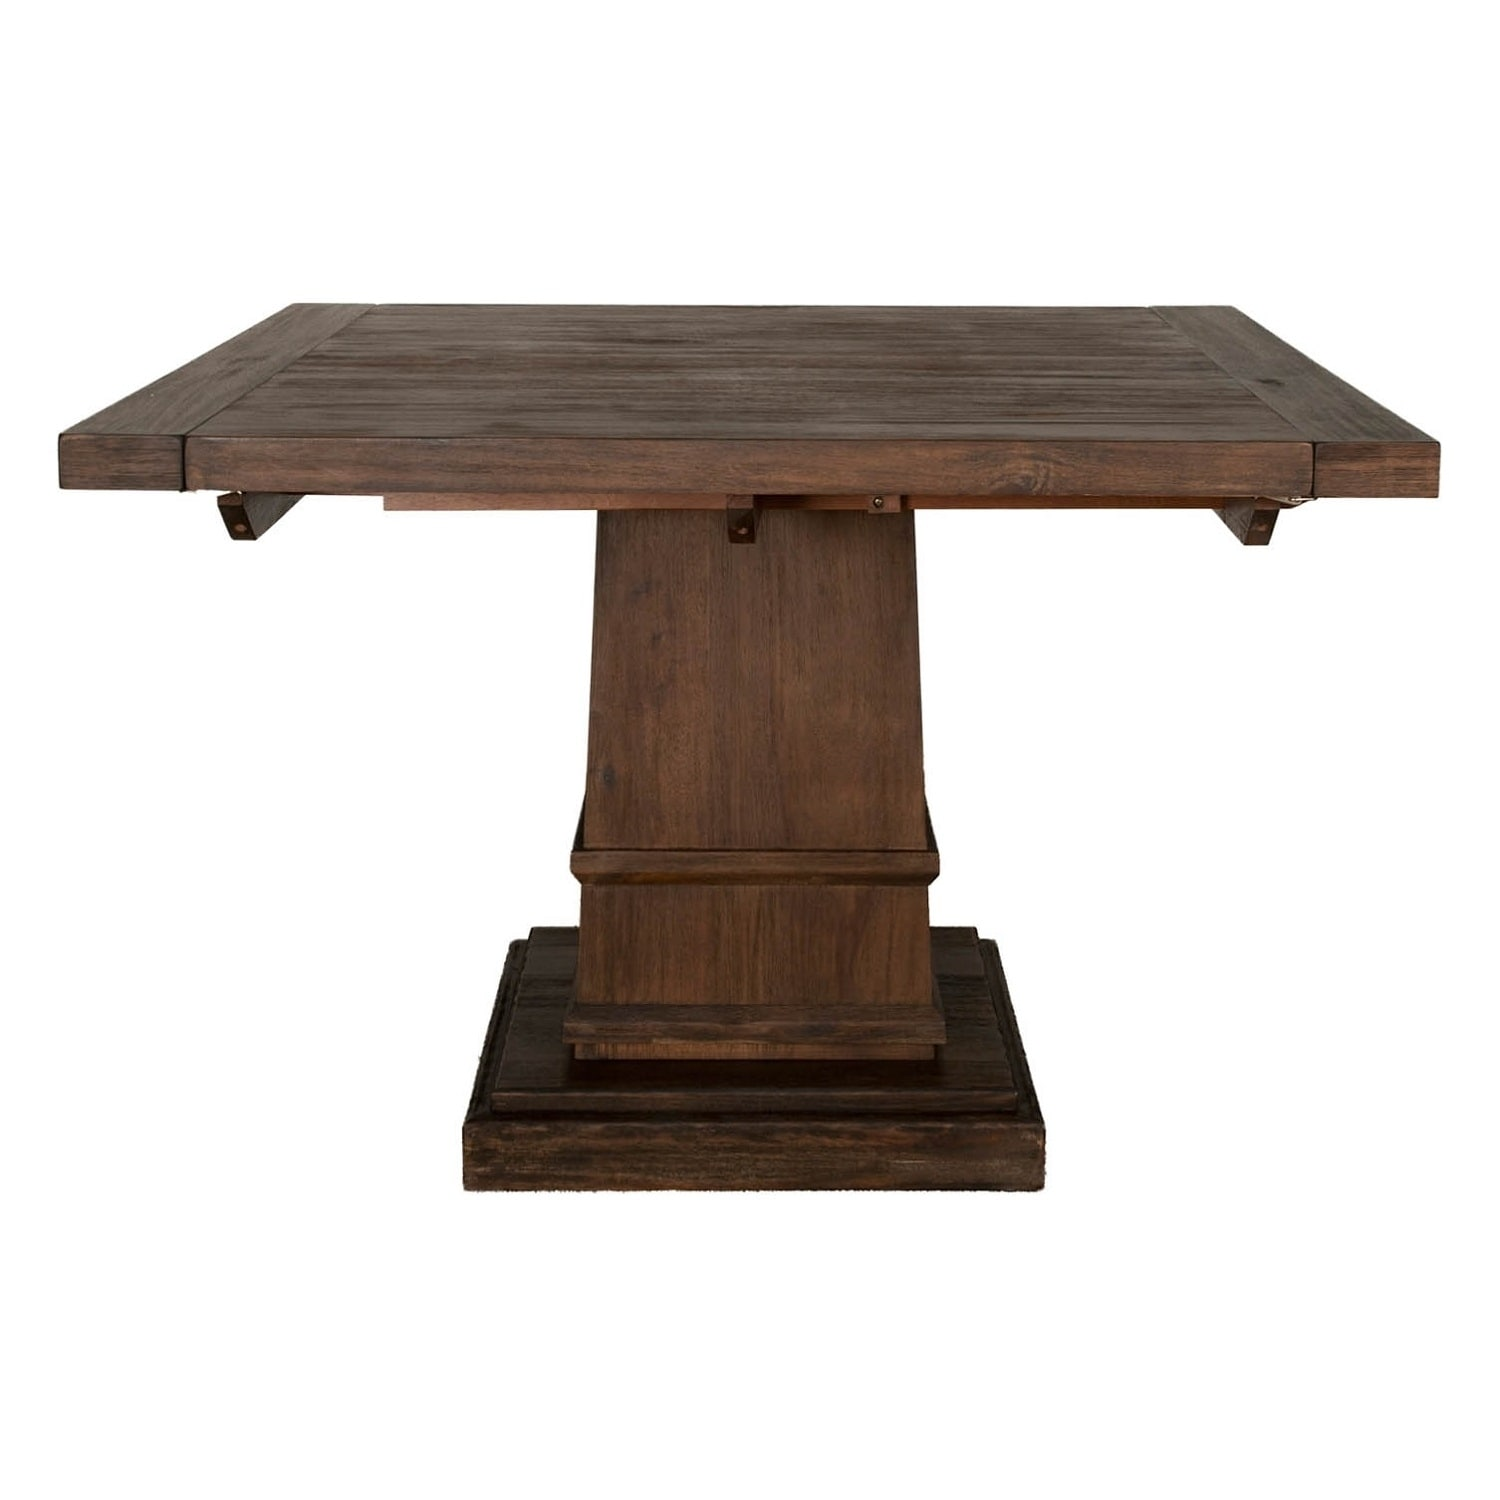 Modish Wooden Square Extension Dining Table Dark Brown Free Shipping Today 22827353